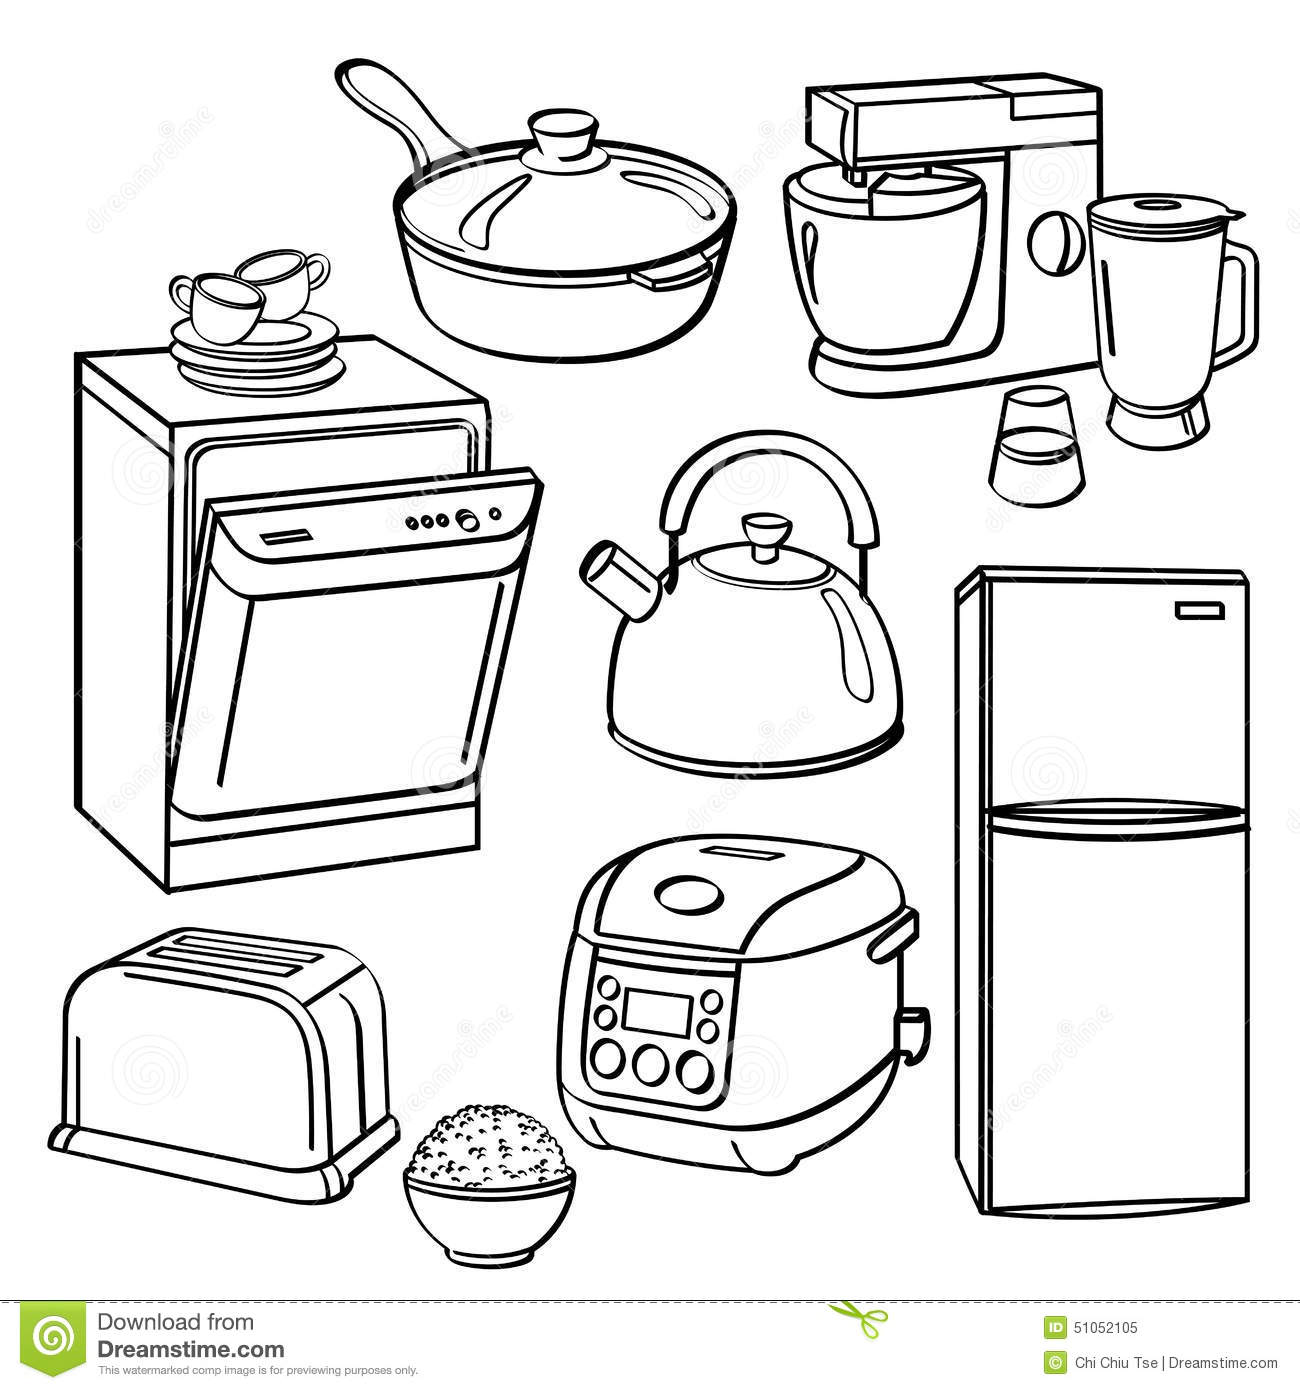 80417818 also Royalty Free Stock Photography Guitars Flames Silhouettes Vector Illustration Separate Layers Easy Editing Image31278067 together with Basic Circuit Element Inductor additionally 1325589186 L And T together with Stock Illustration Home Electric Appliances Collection Different Kinds Sketch Style Contains Hi Res   Pdf Illustrator Files Image51052612. on l electrical symbol